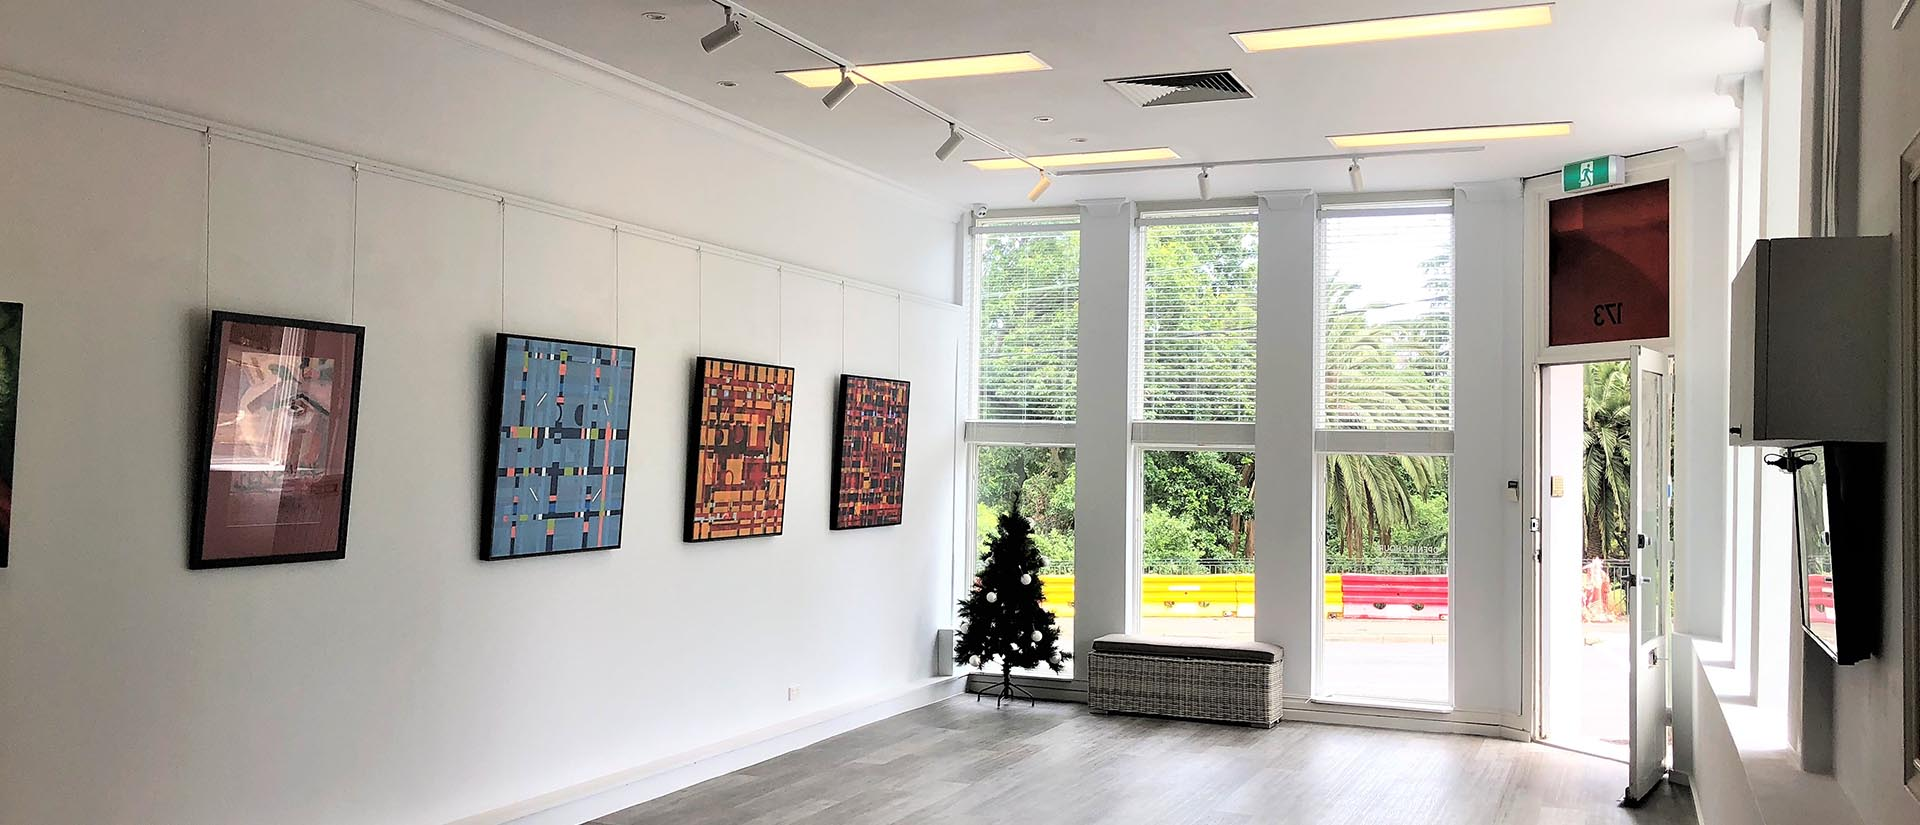 Projects-Office&Institute_ACAE Gallery 3